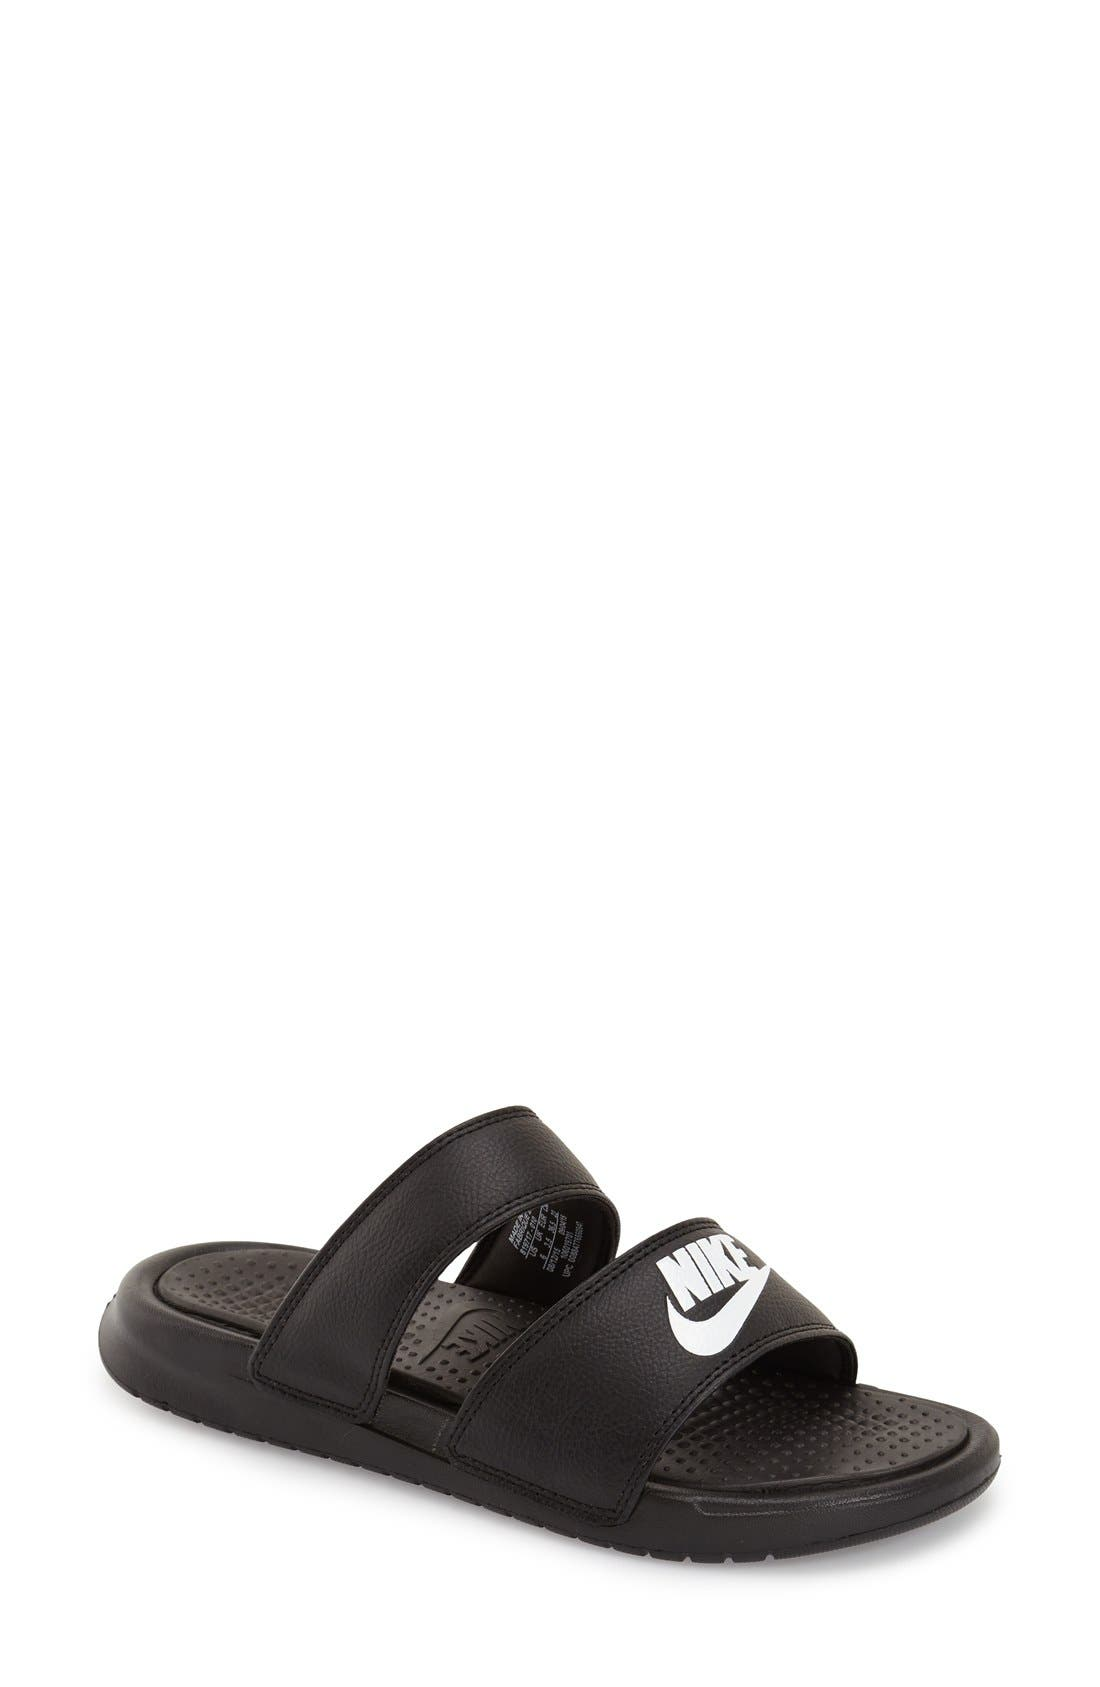 Alternate Image 1 Selected - Nike 'Benassi - Ultra' Slide Sandal (Women)